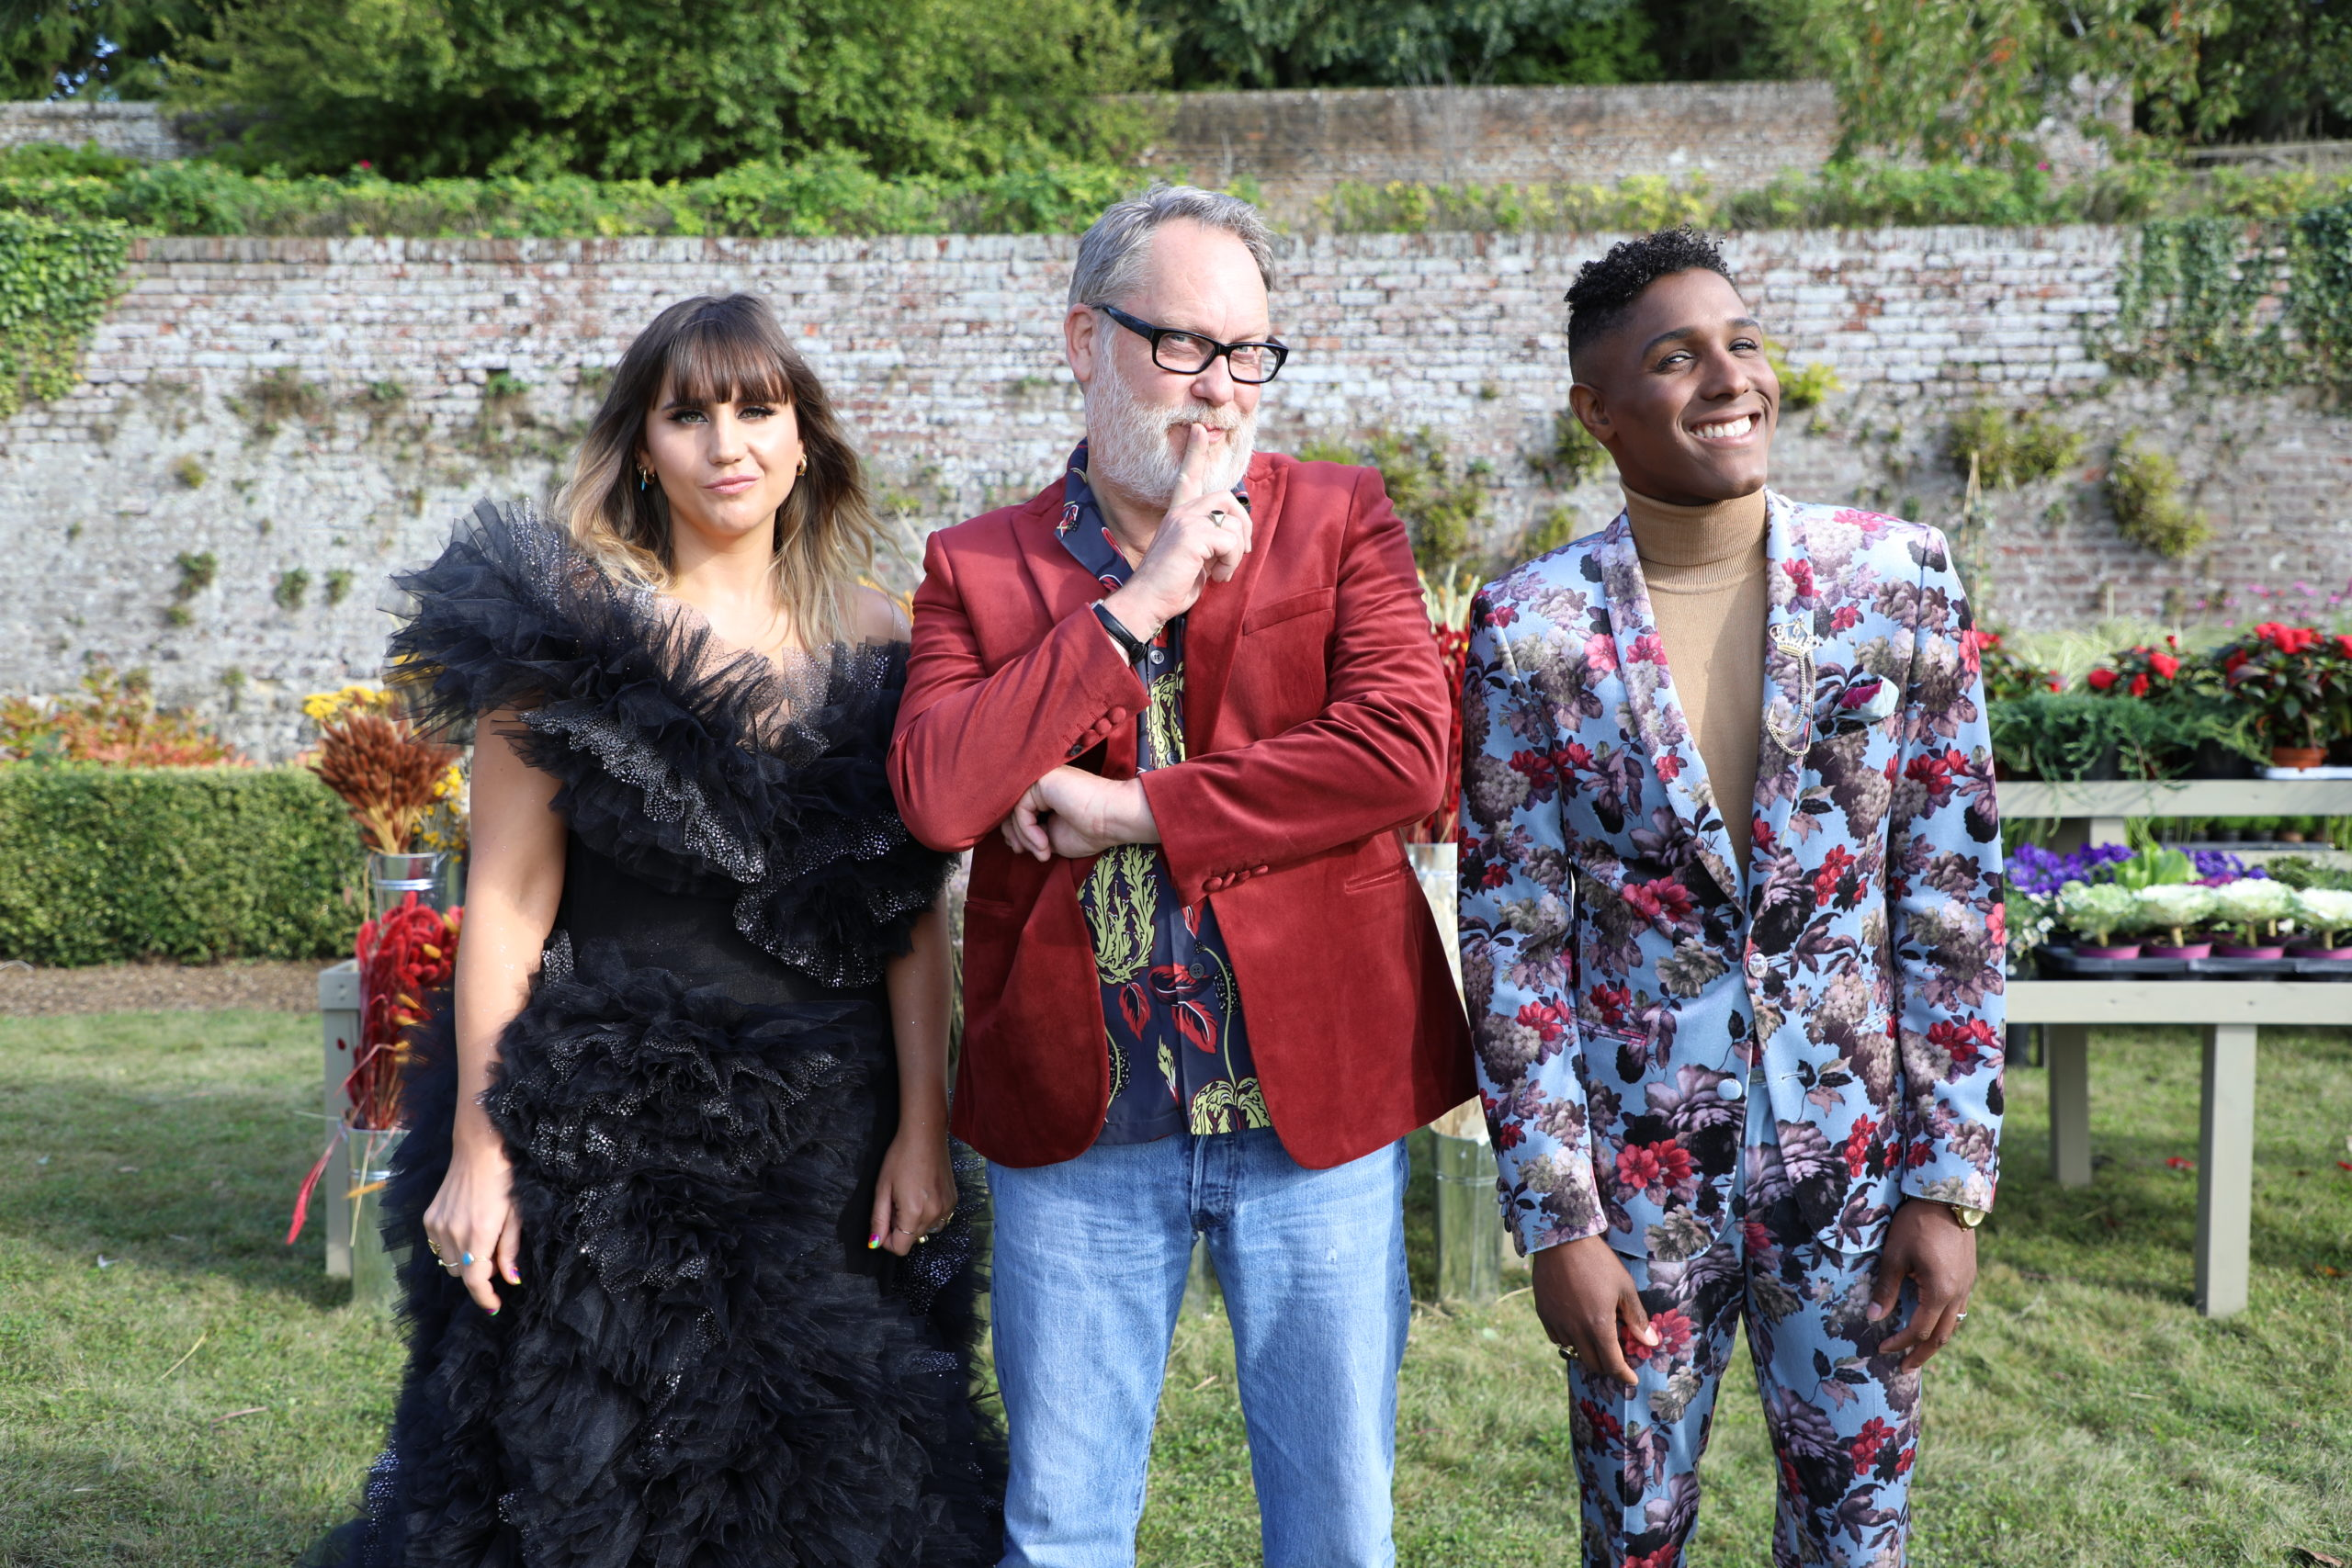 From left: Natasia Demetriou, Vic Reeves and Kristen Griffith-VanderYacht.